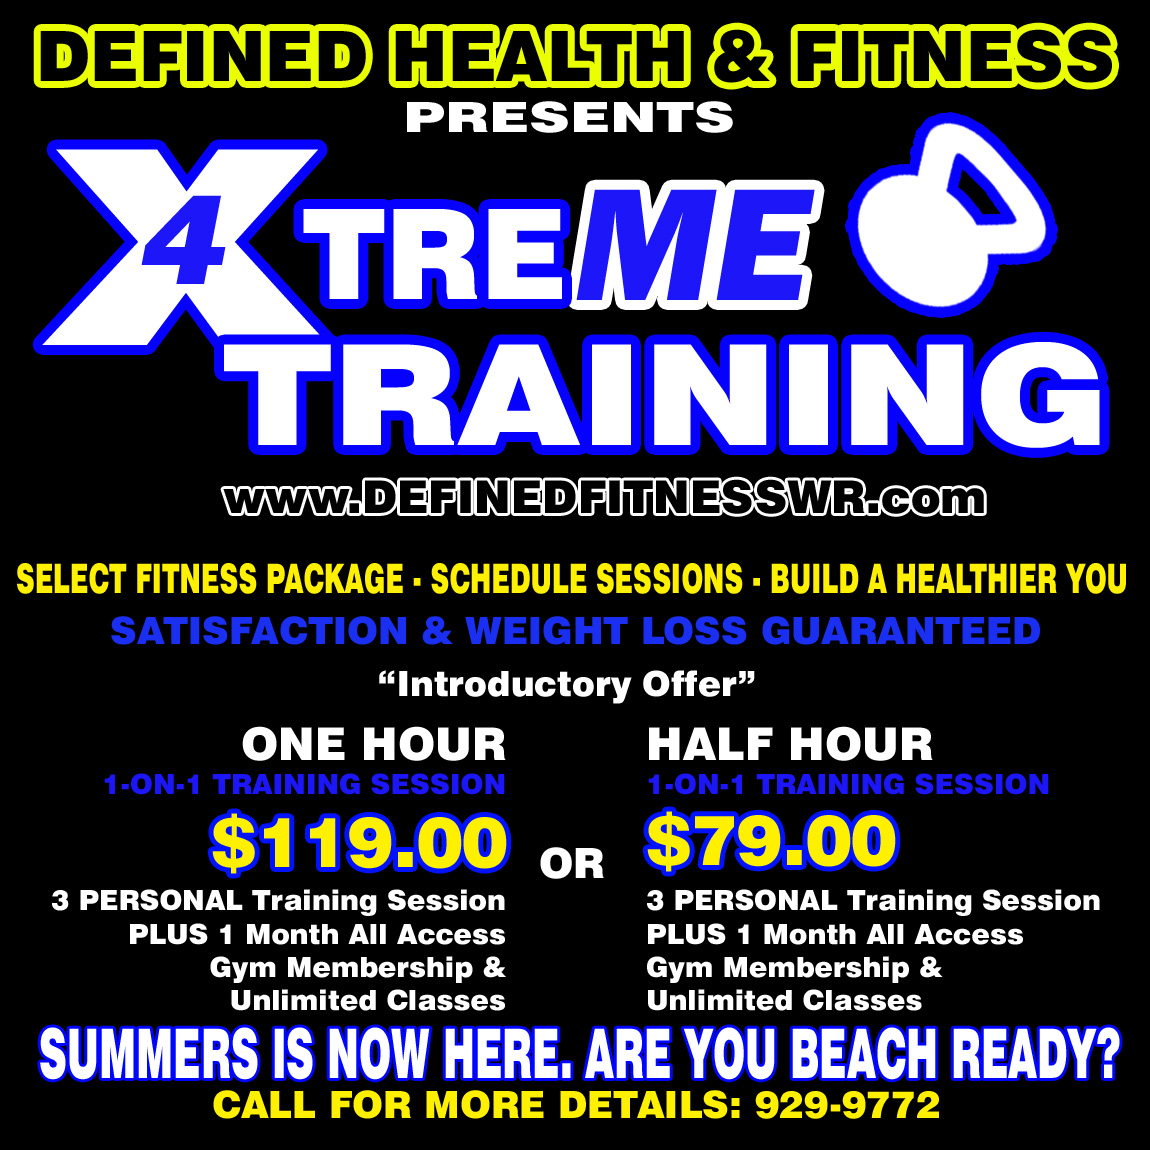 XTREMEorigialTRAINING_JULY copy